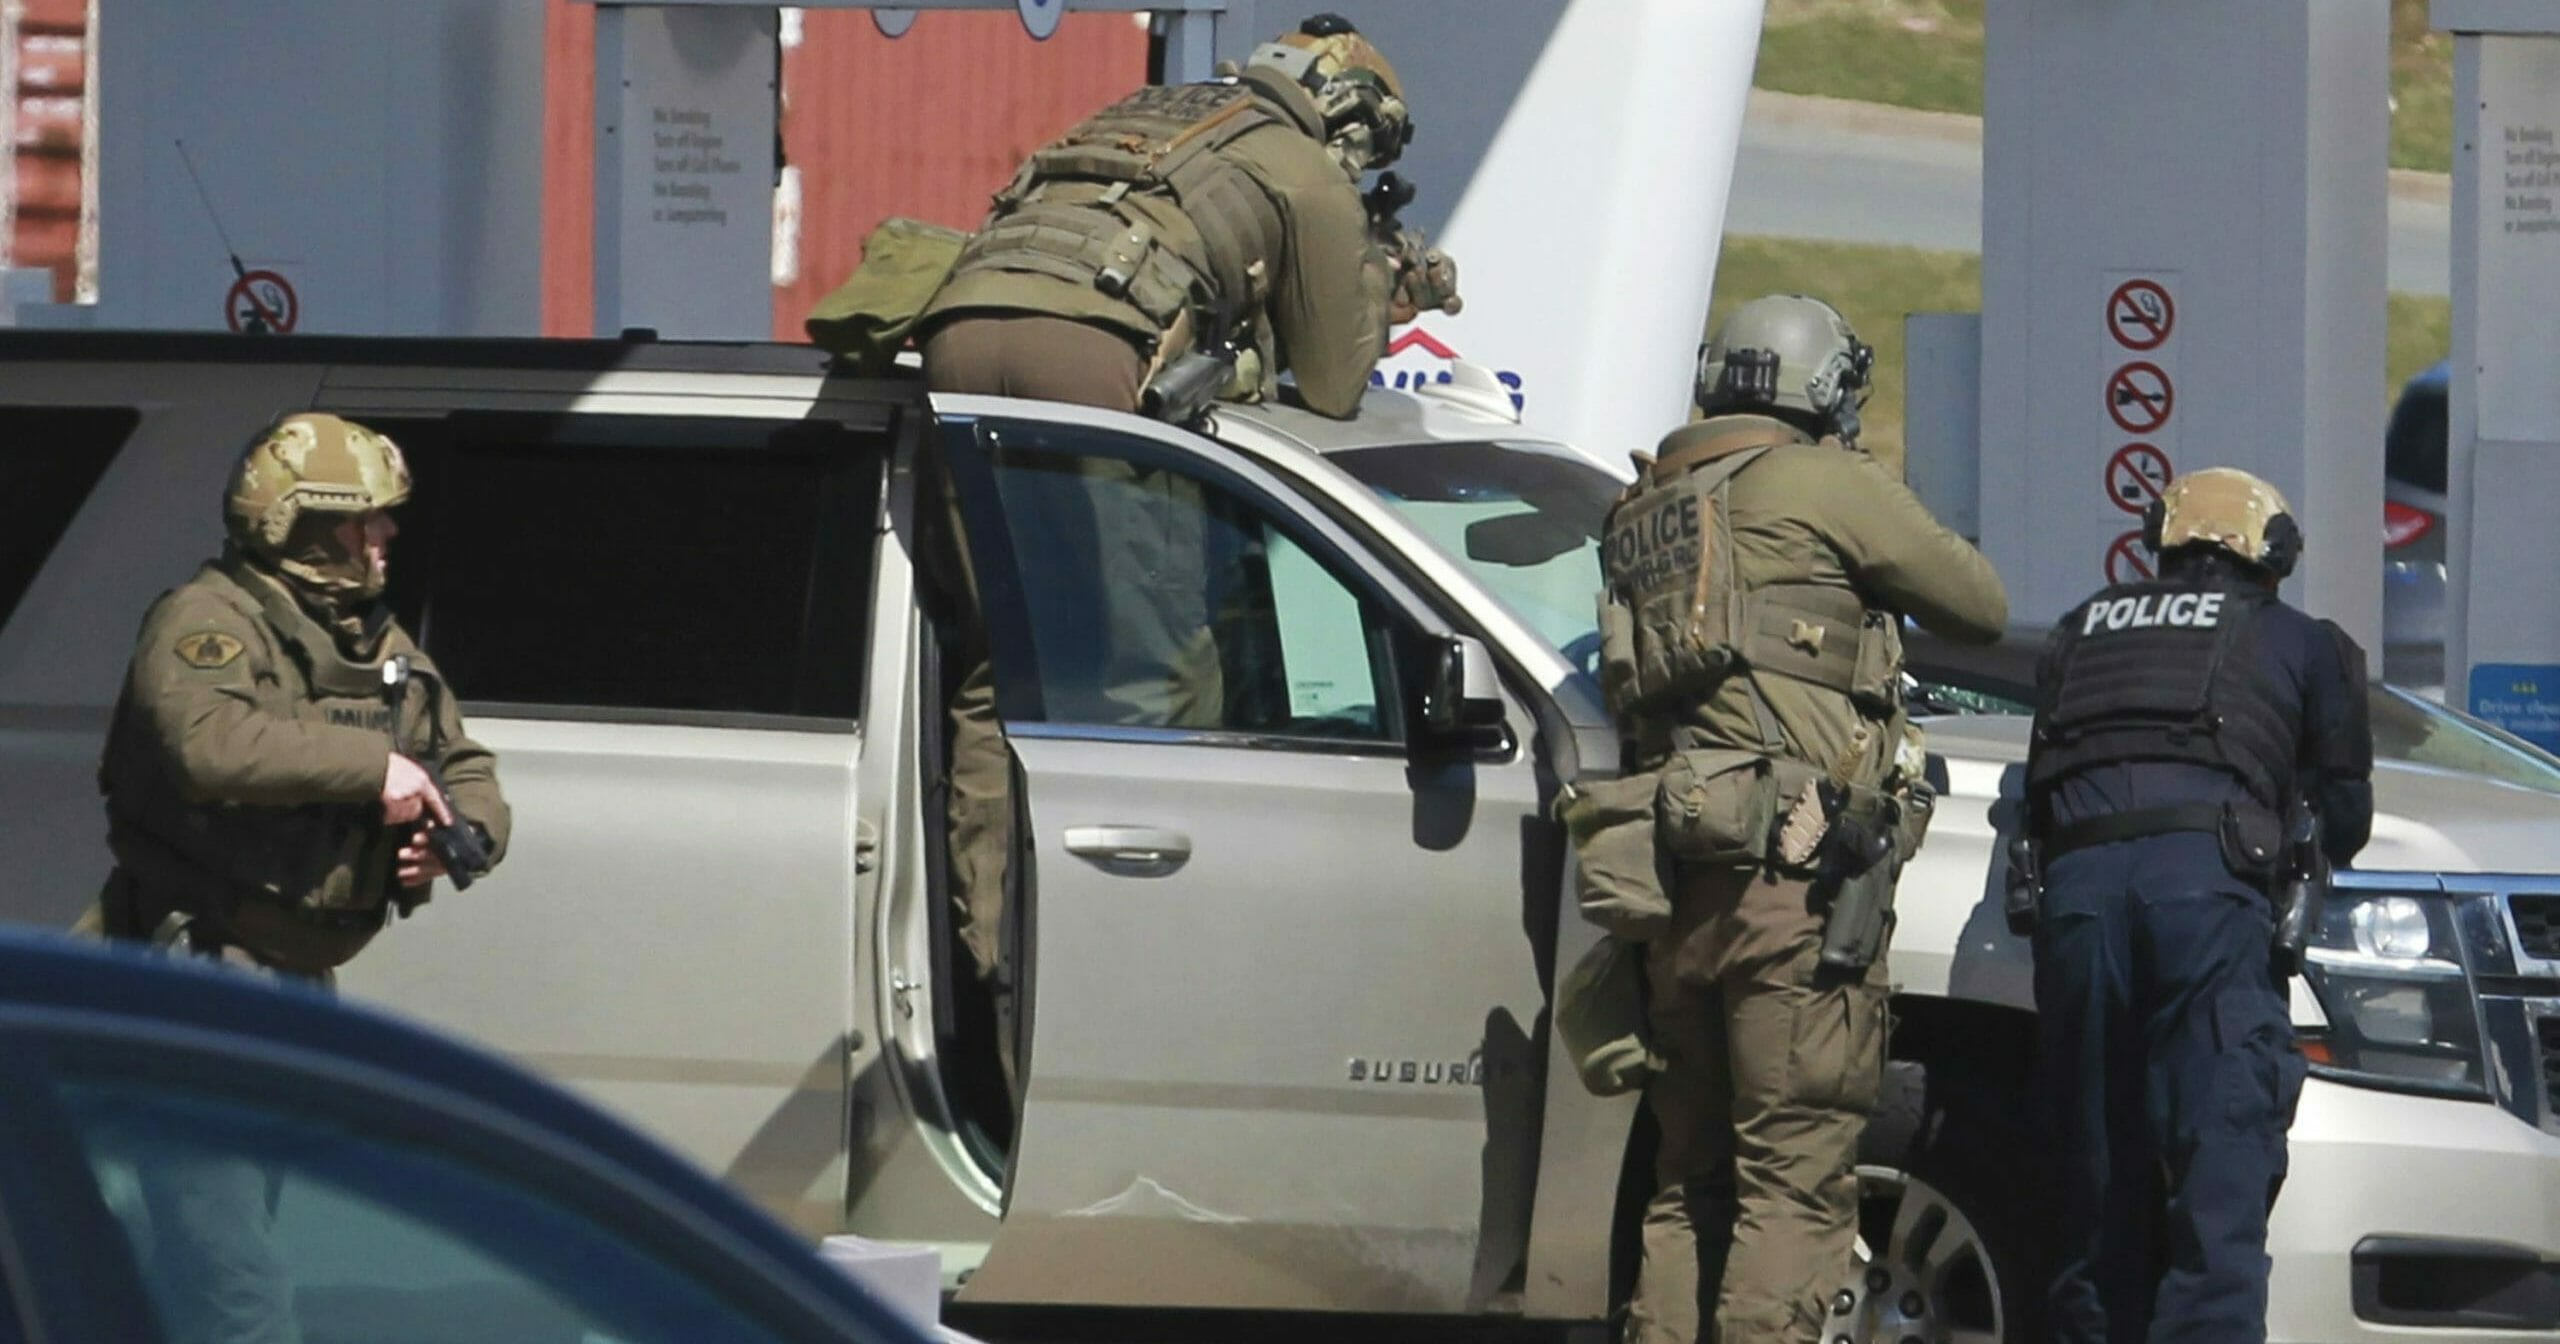 Royal Canadian Mounted Police officers surround a suspect at a gas station in Enfield, Nova Scotia, on April 19, 2020.